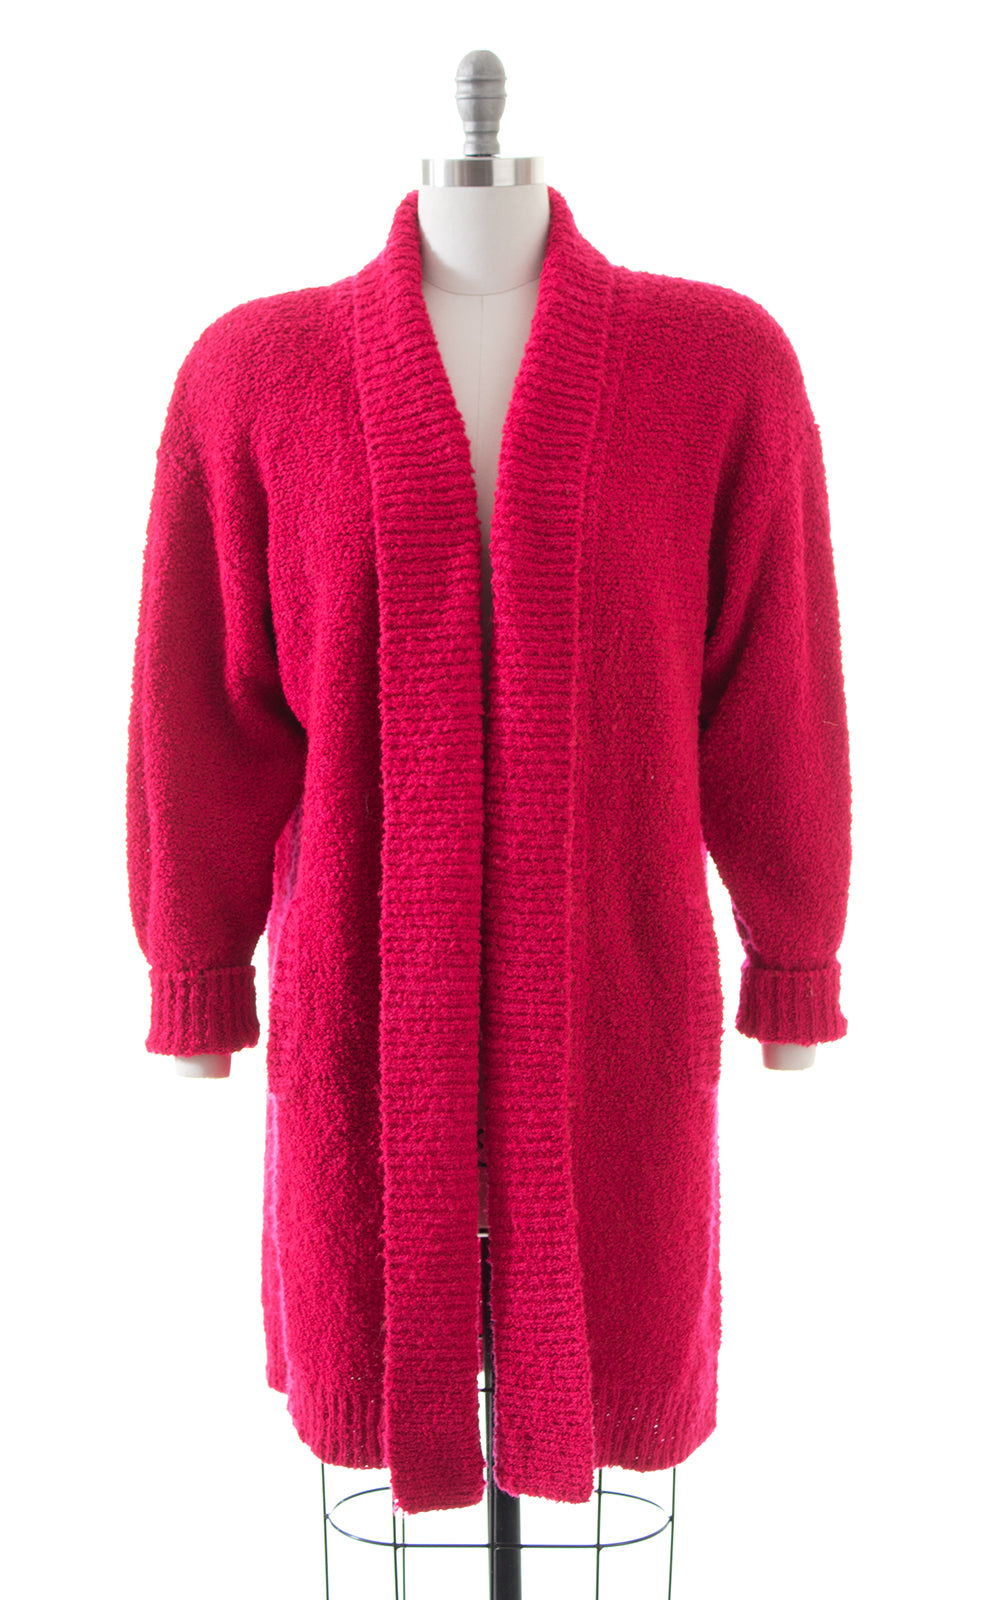 1980s Hot Pink Bouclé Knit Sweater Coat